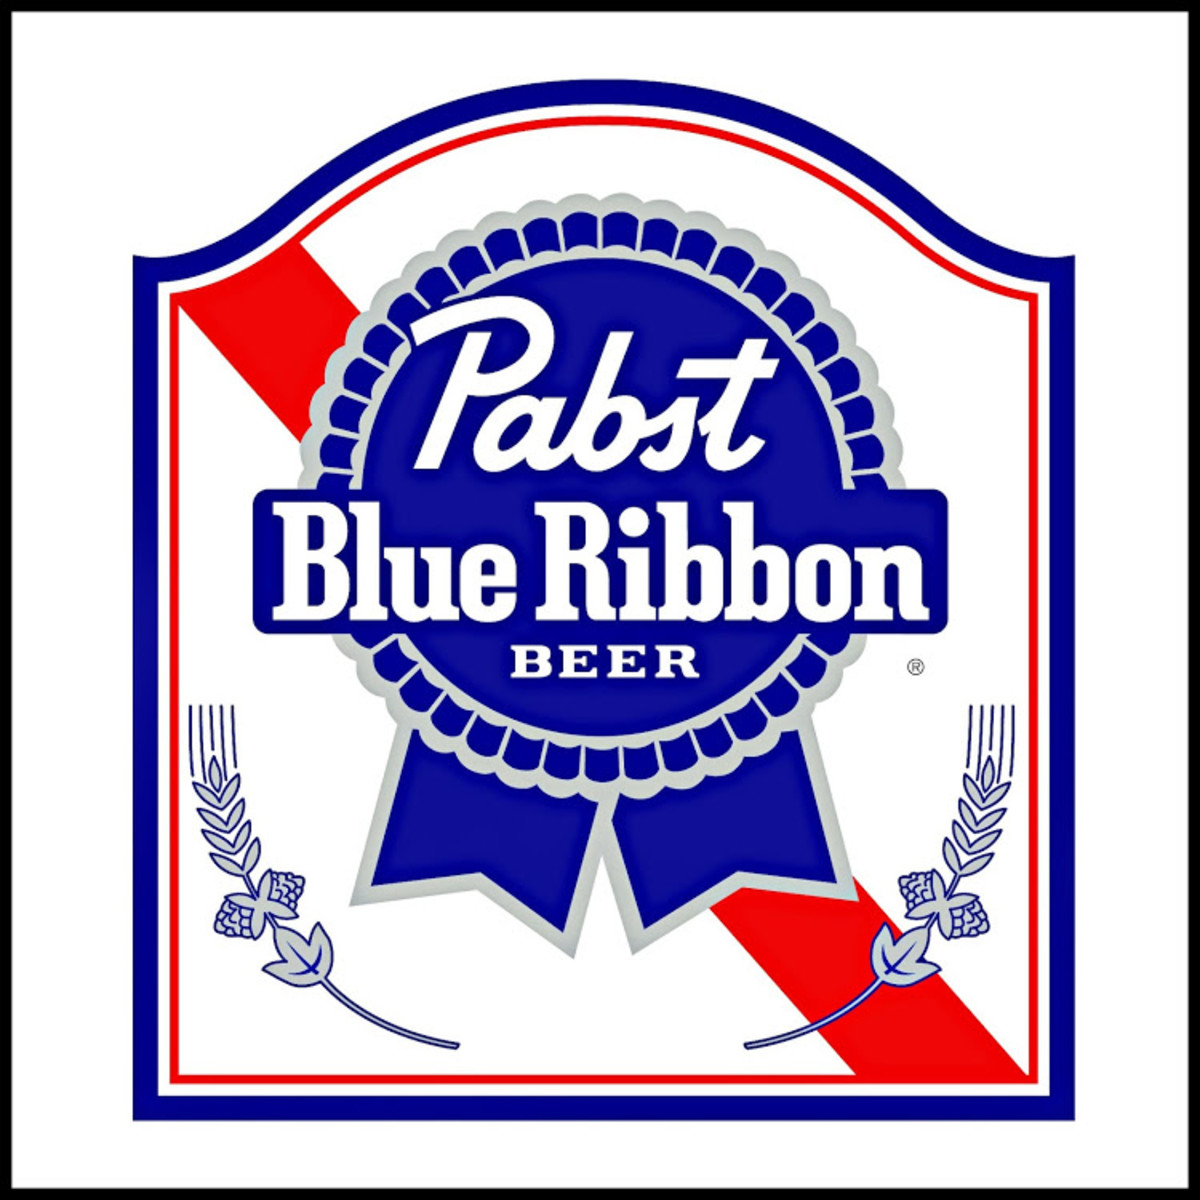 In 1951, Pabst aired the first color beer commercial on television.